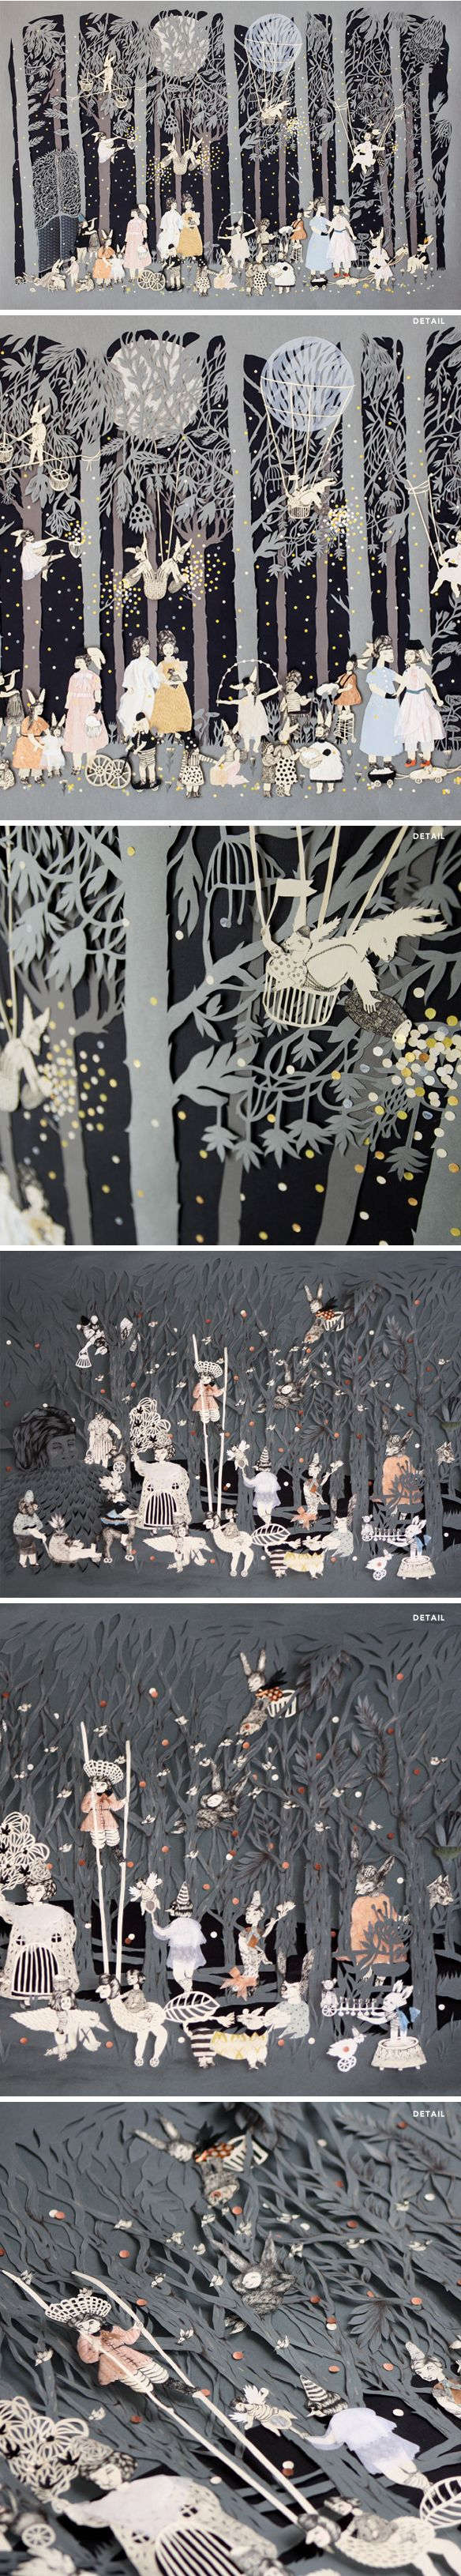 Lucila Biscione's magical paper worlds, created with layers of very carefully cut paper, ink and graphite.